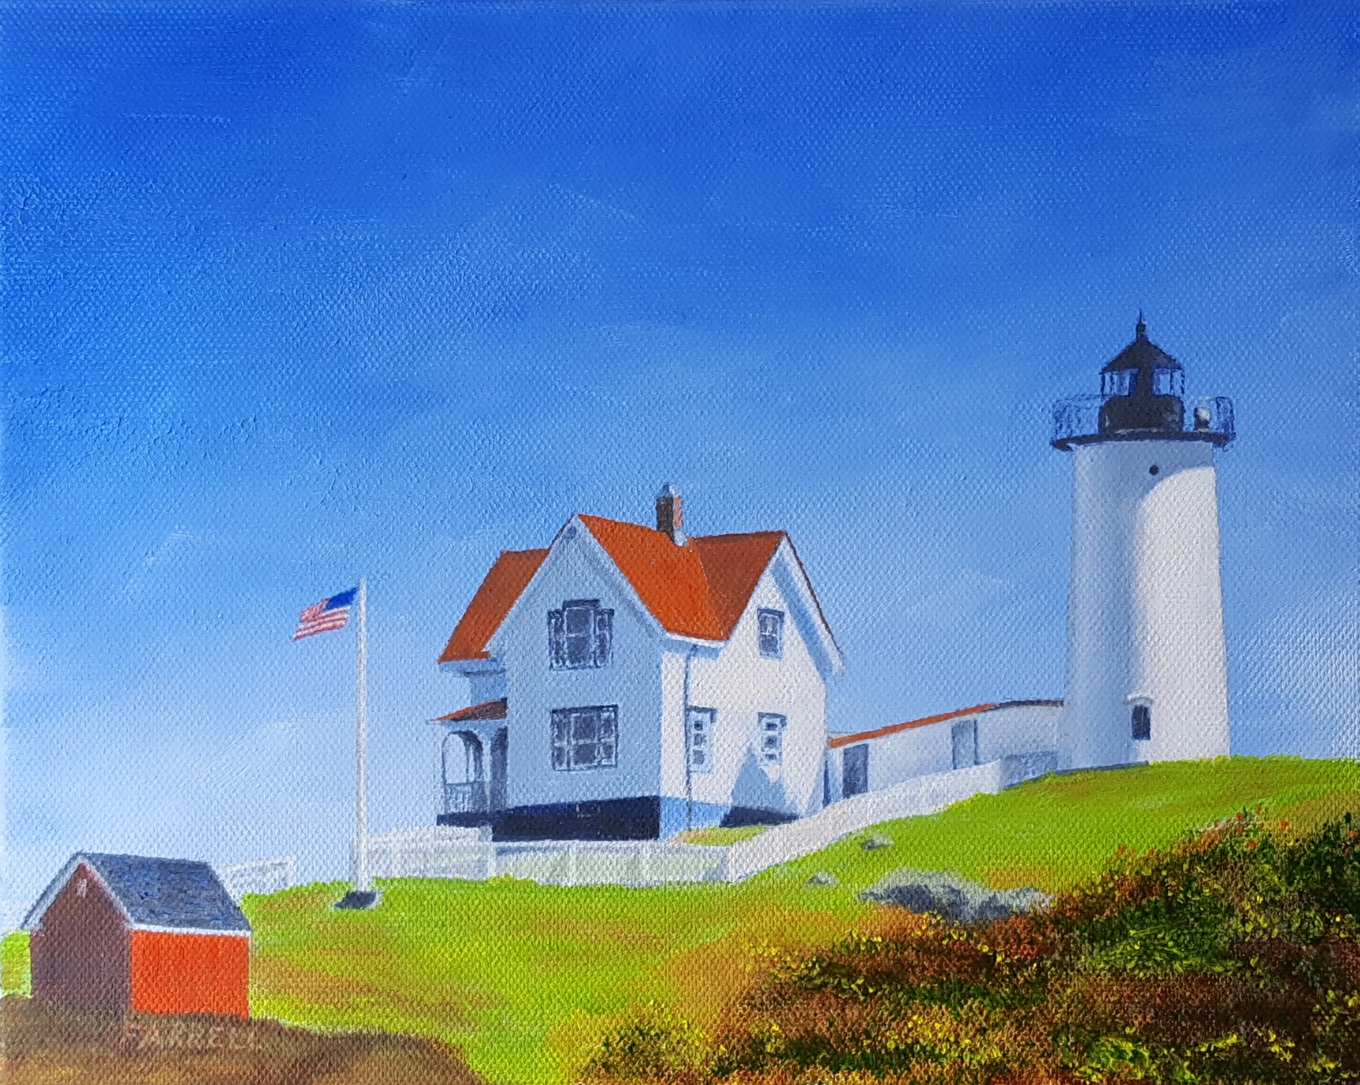 The Nubble Lighthouse in York, Maine is a very popular tourist destination in New England.